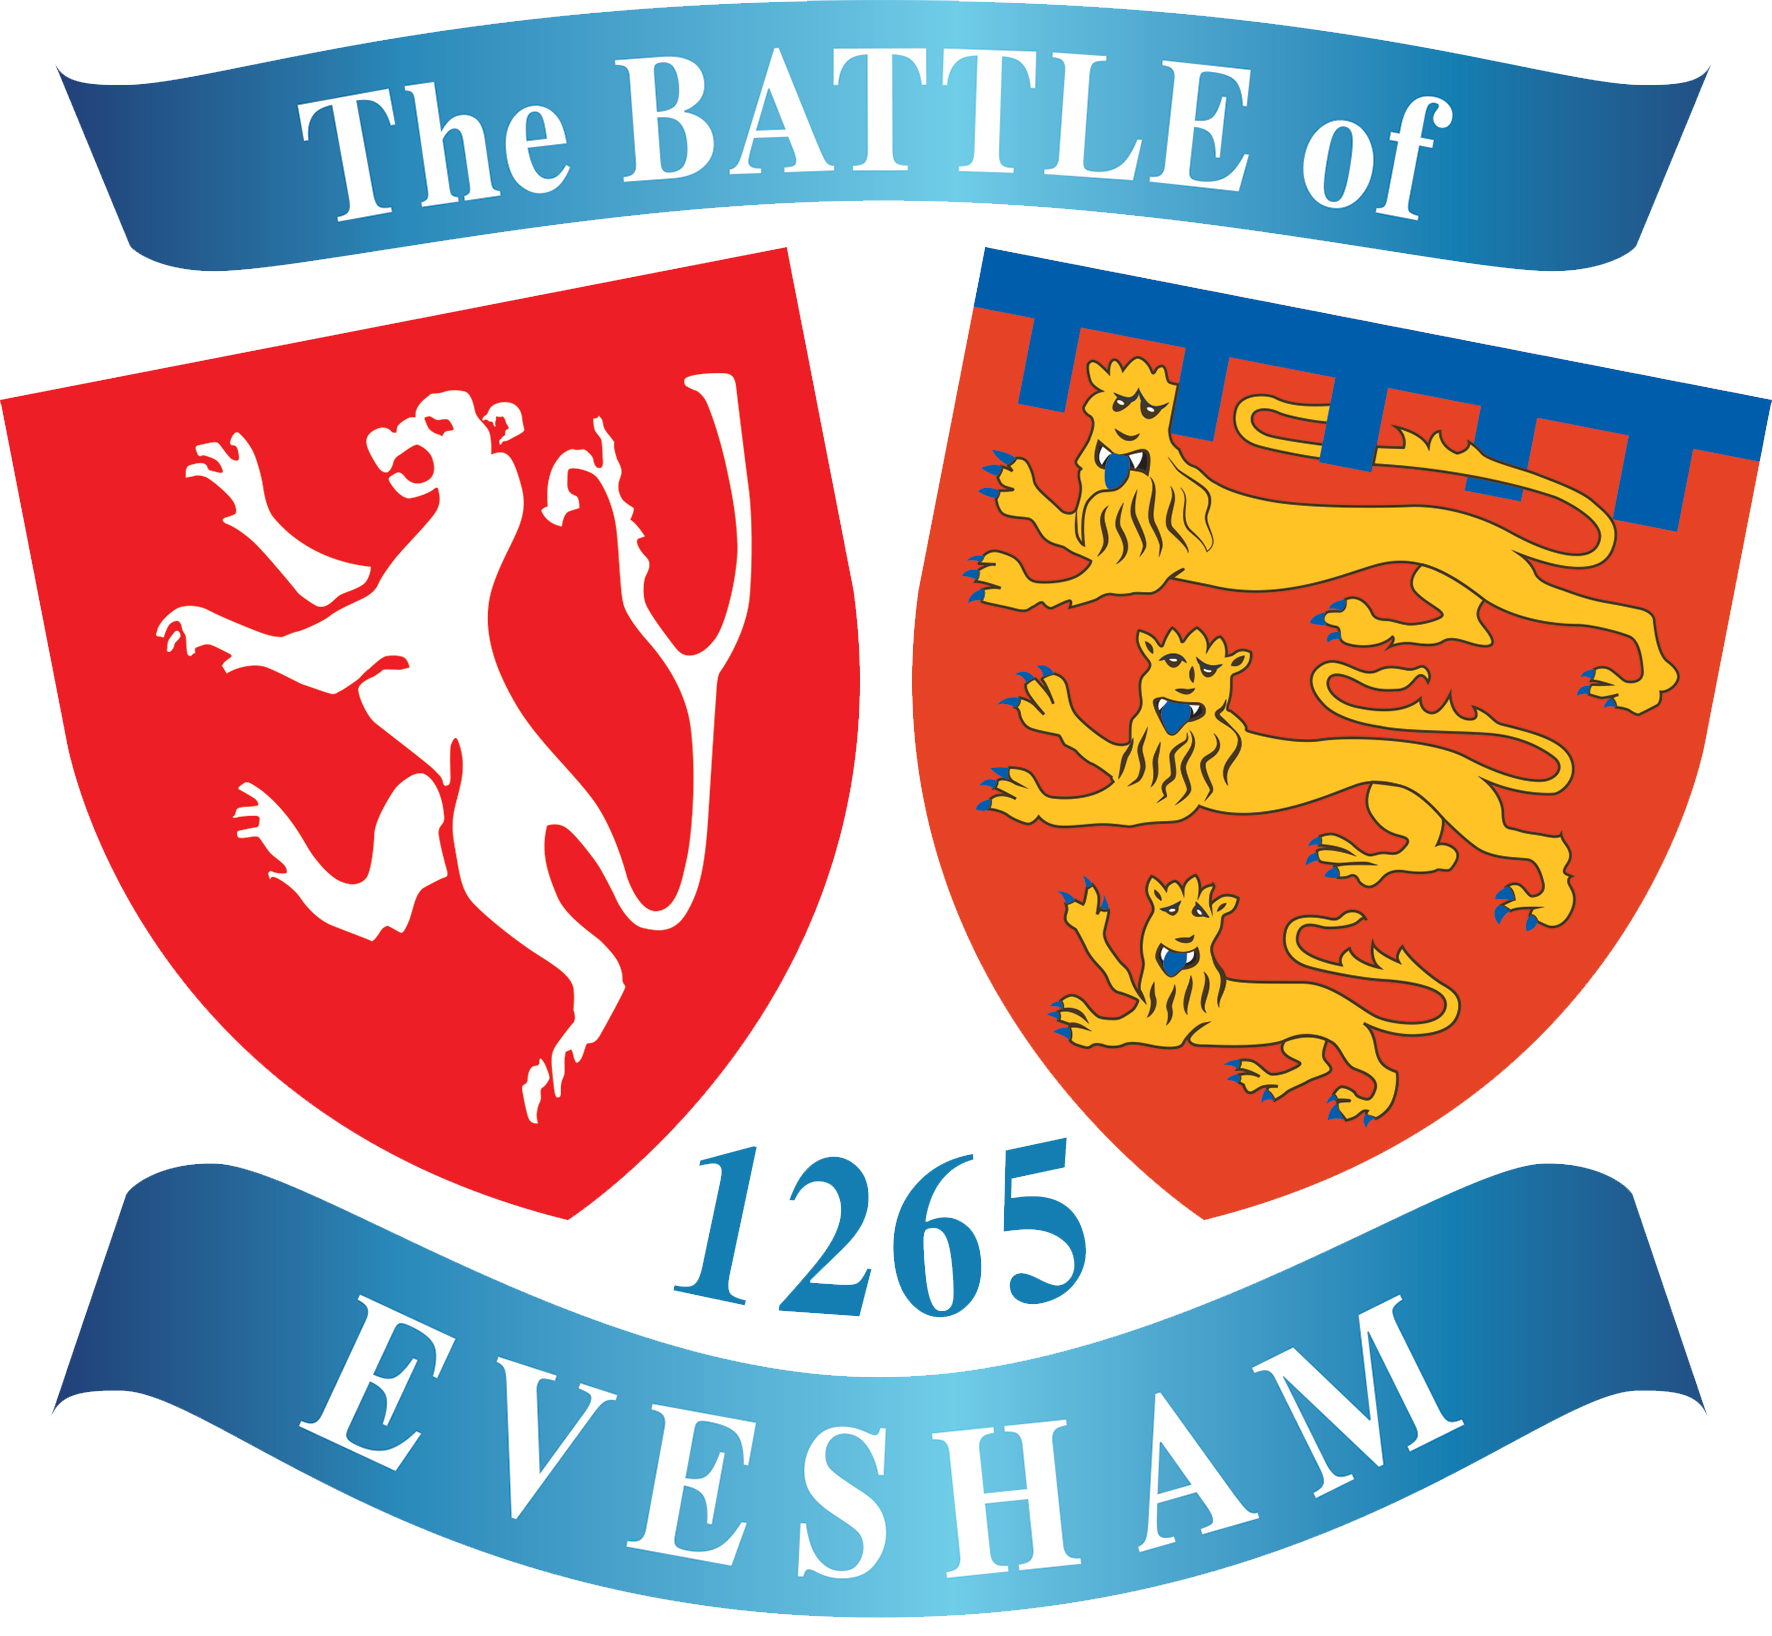 Battle of Evesham  Re-enactment and Medieval Festival